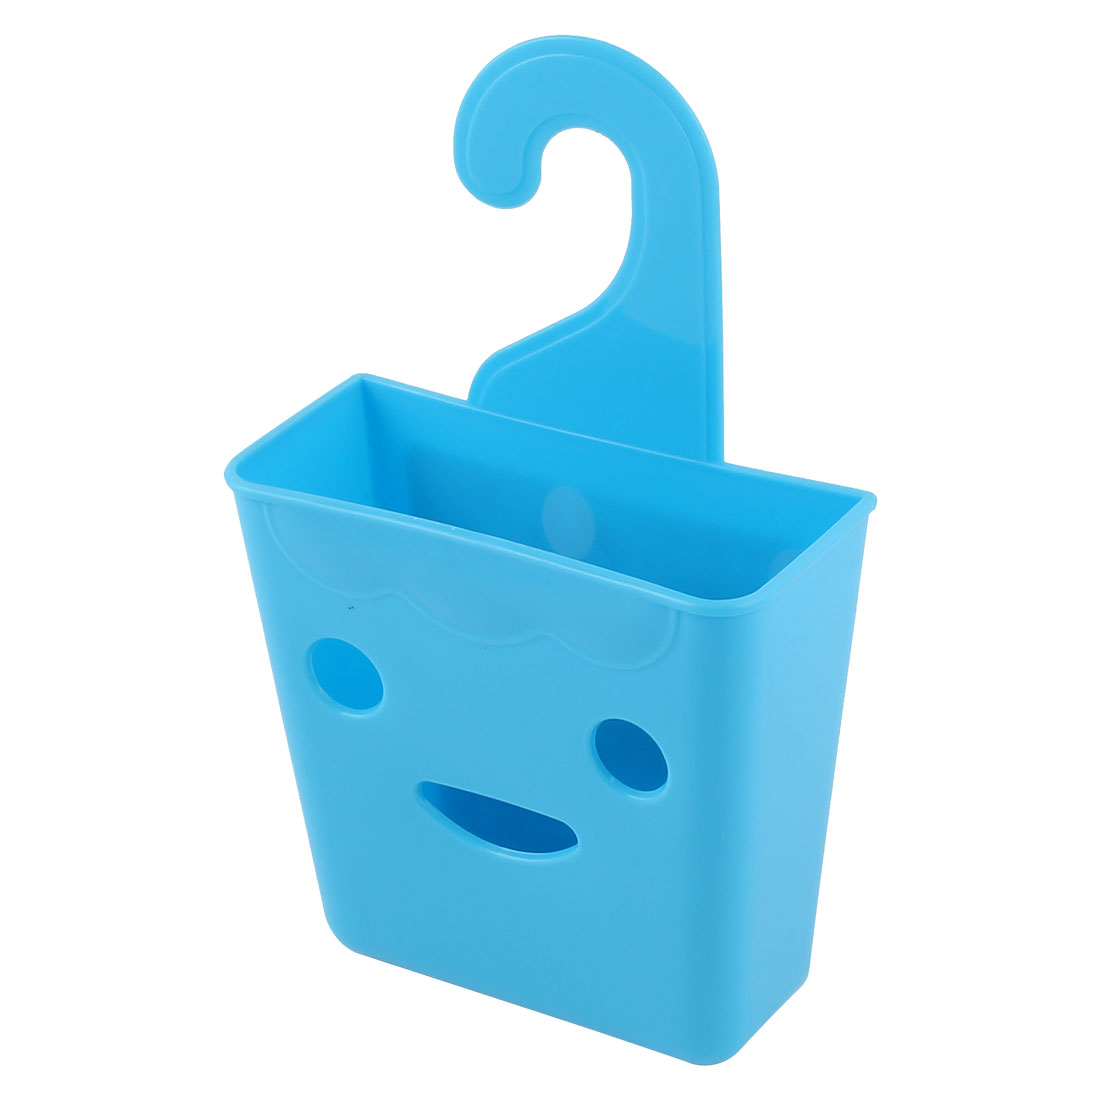 Bathroom Closet Plastic Smiling Face Design Wall Hanging Storage Case Basket Organizer Holder Blue